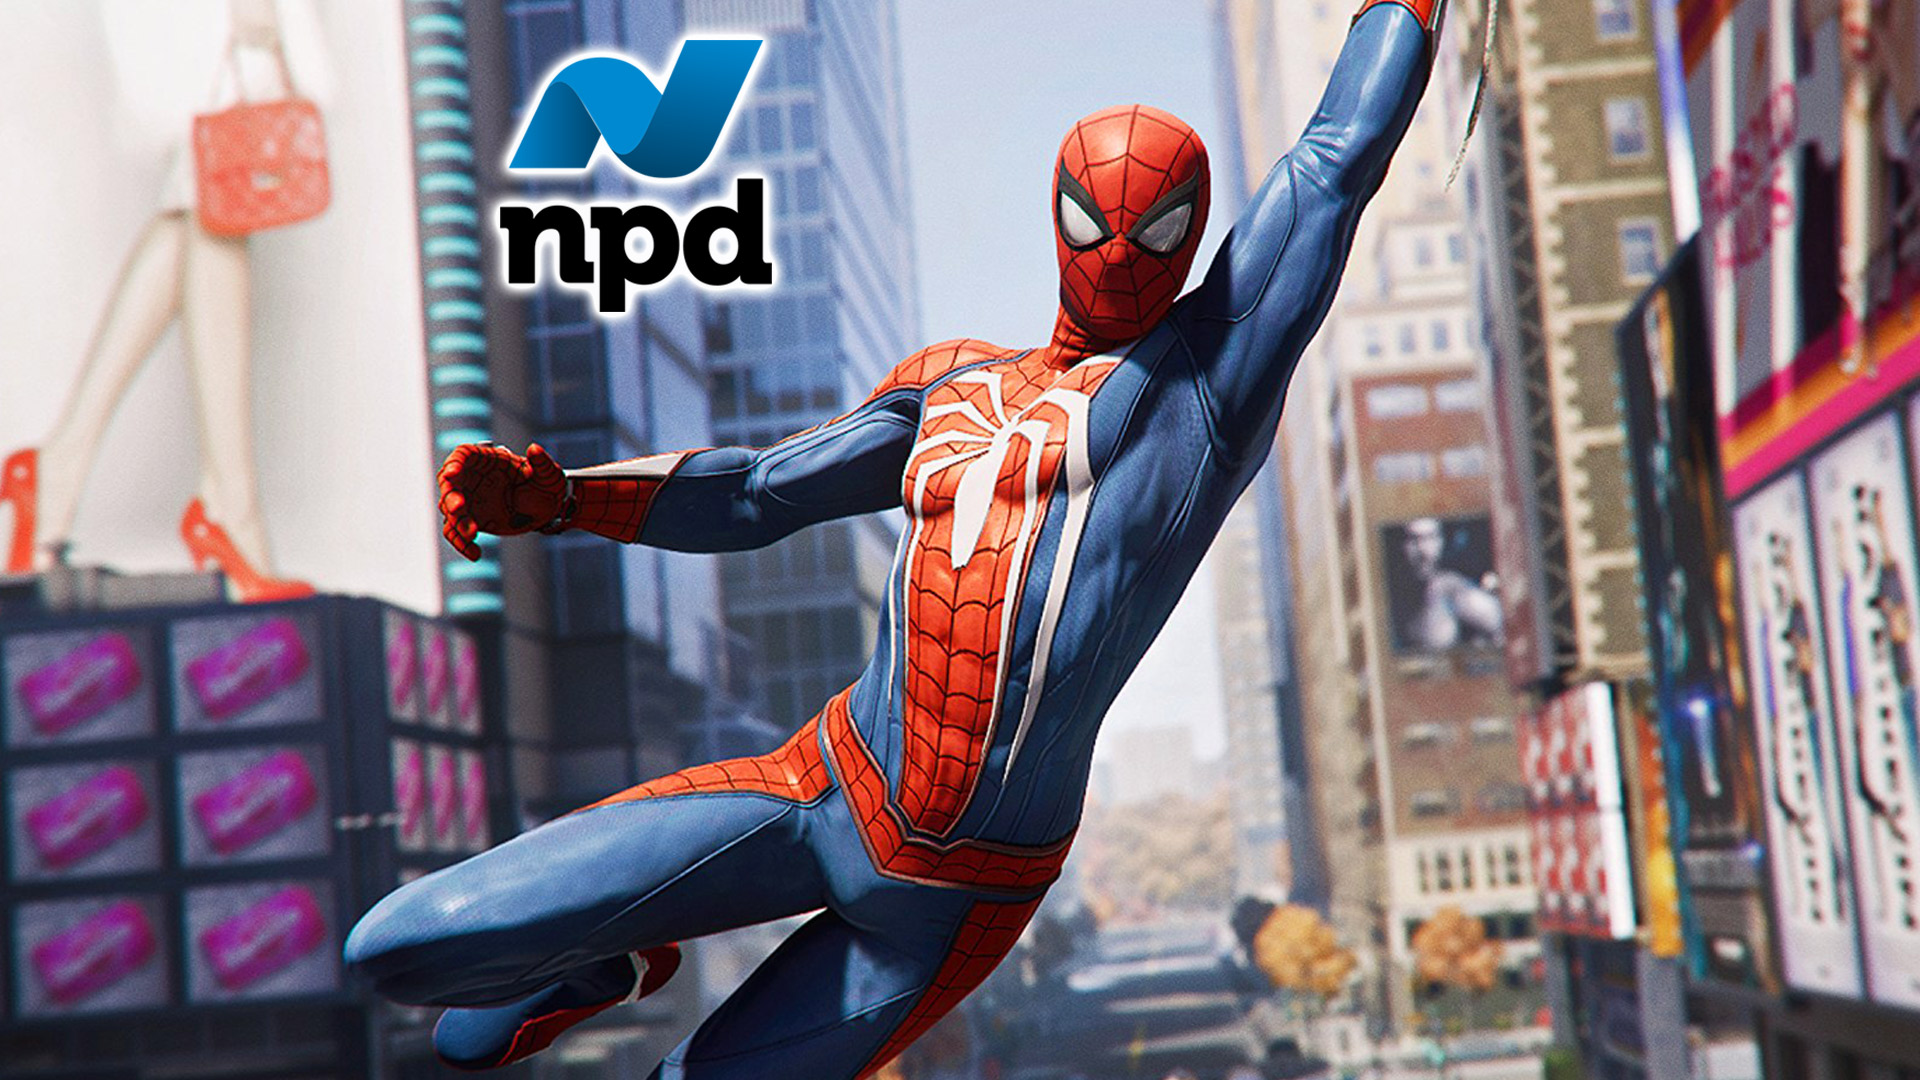 NPD September 2018 Gaming Estimates and Analysis: Spider-Man Swings to Victory